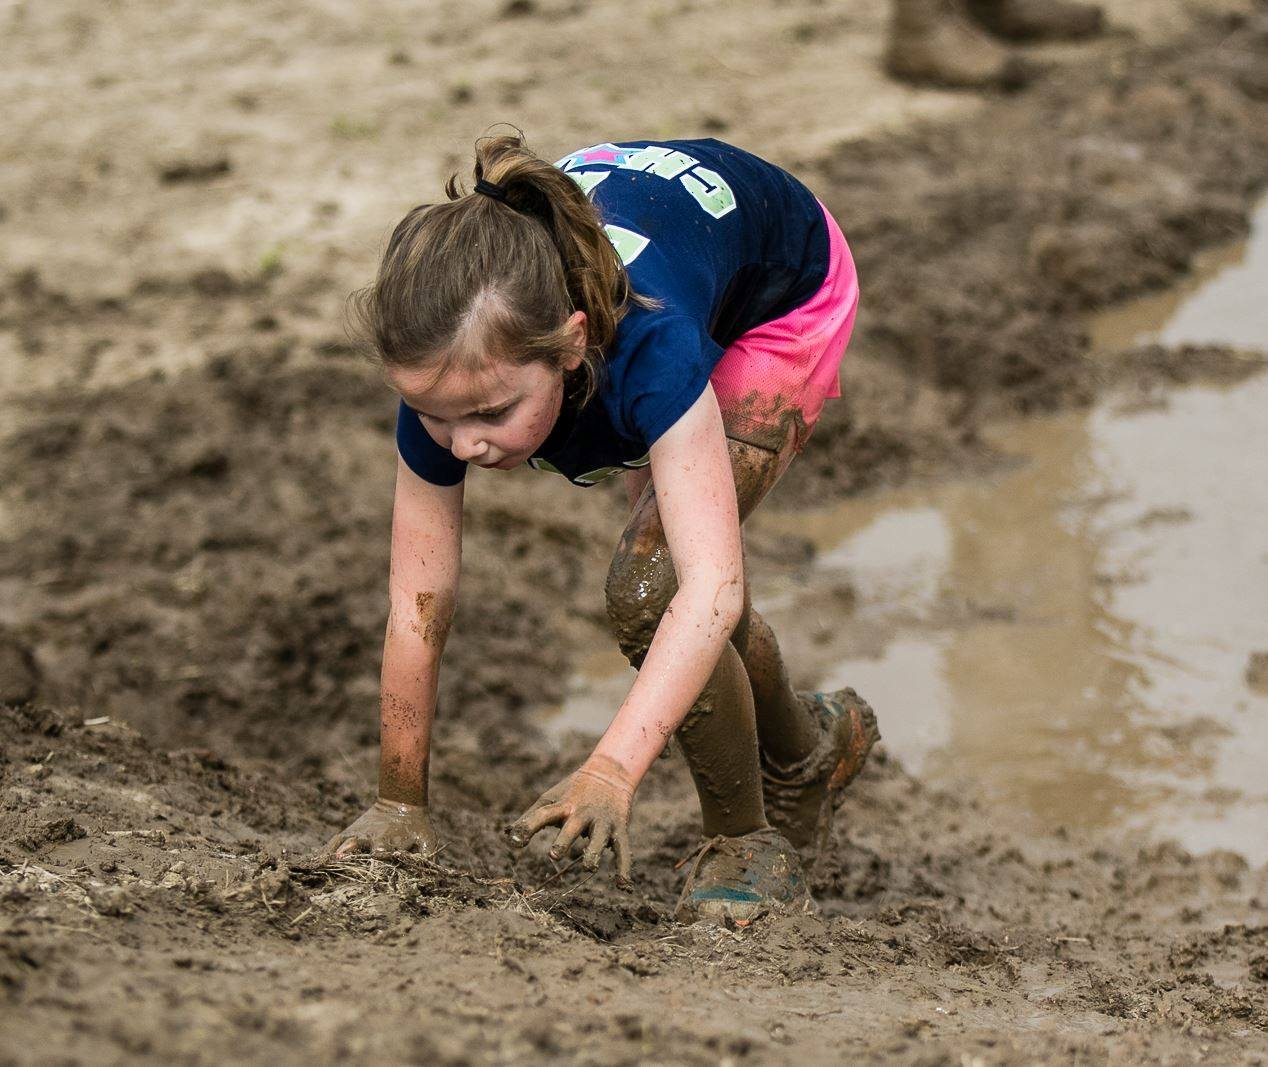 Just Another Mudder and Gorilla Dash set for April 28